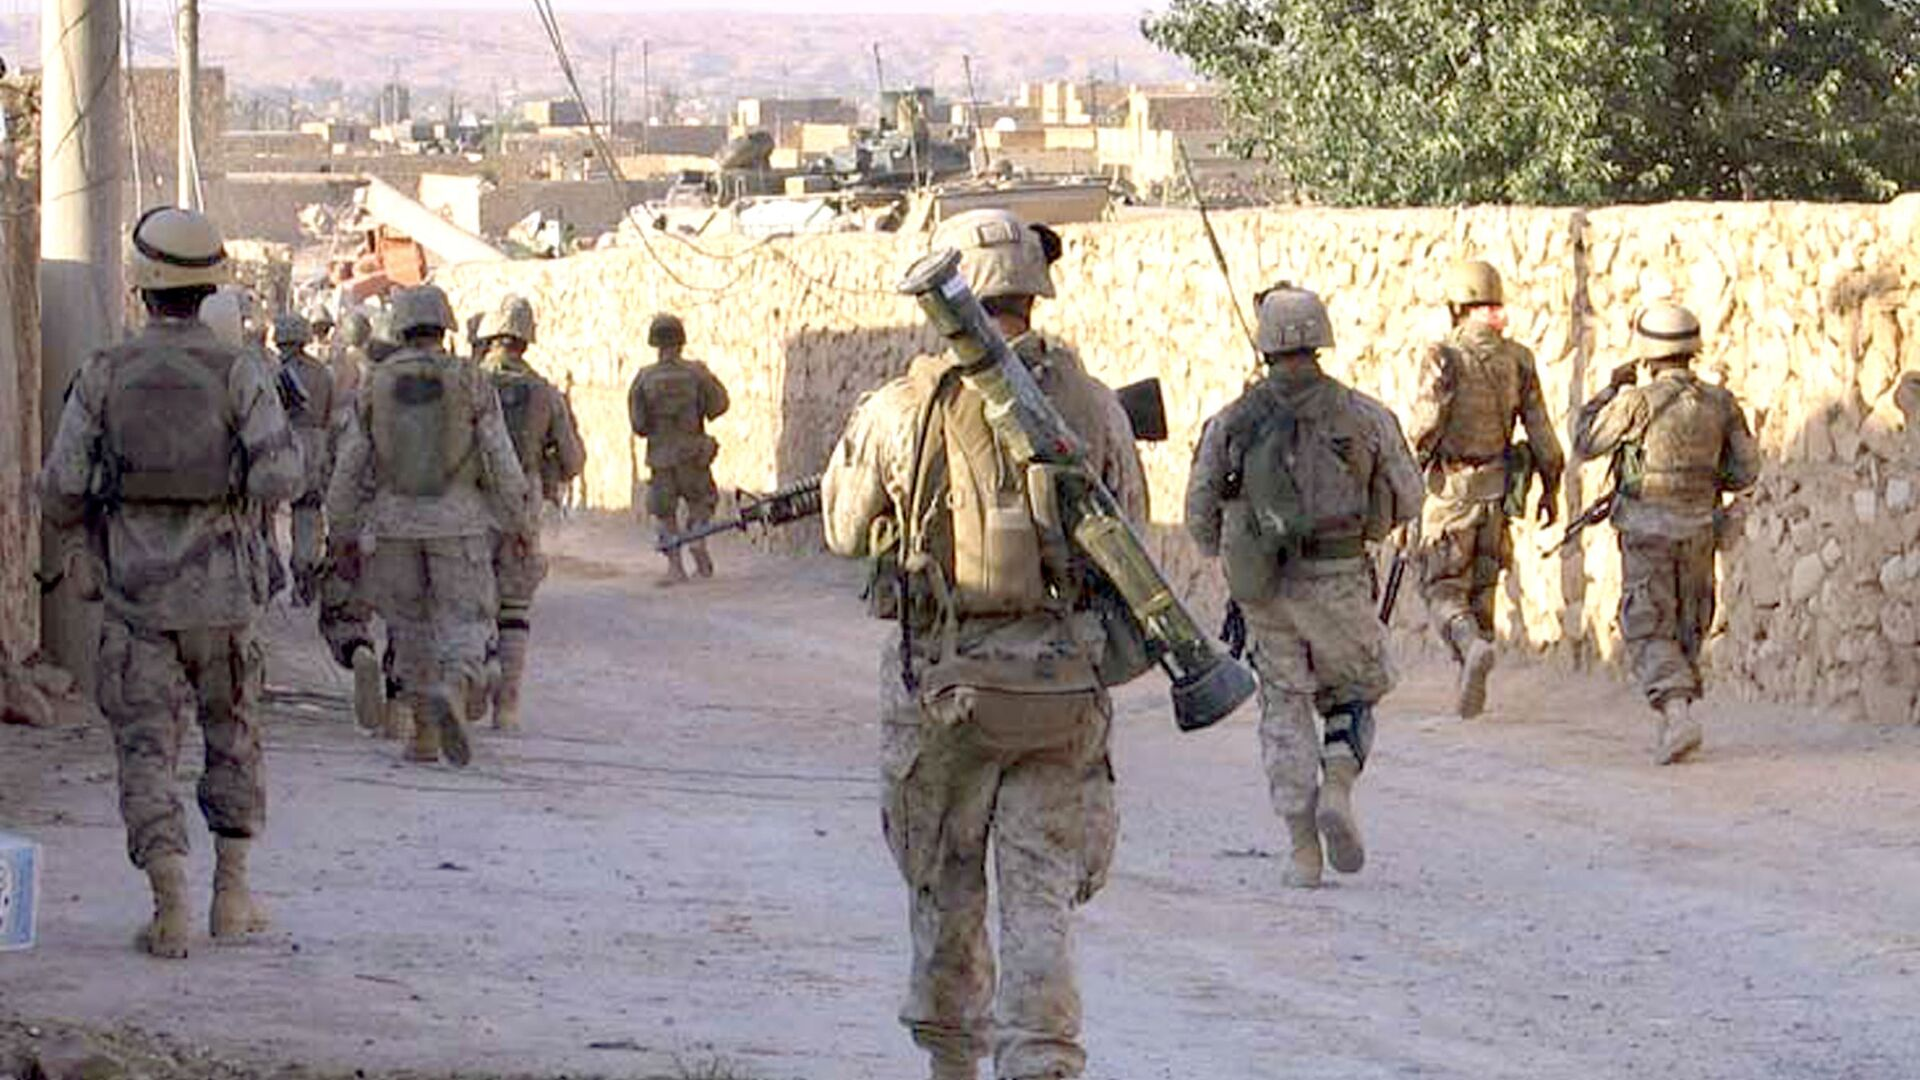 A picture released by the US Marines shows Marines from 3rd Battalion, 2nd Marine Regiment (3/2) and Iraqi Special Forces patrolling a street in the city of Karabilah, near Iraq's northwestern border with Syria (file) - Sputnik Italia, 1920, 29.03.2021